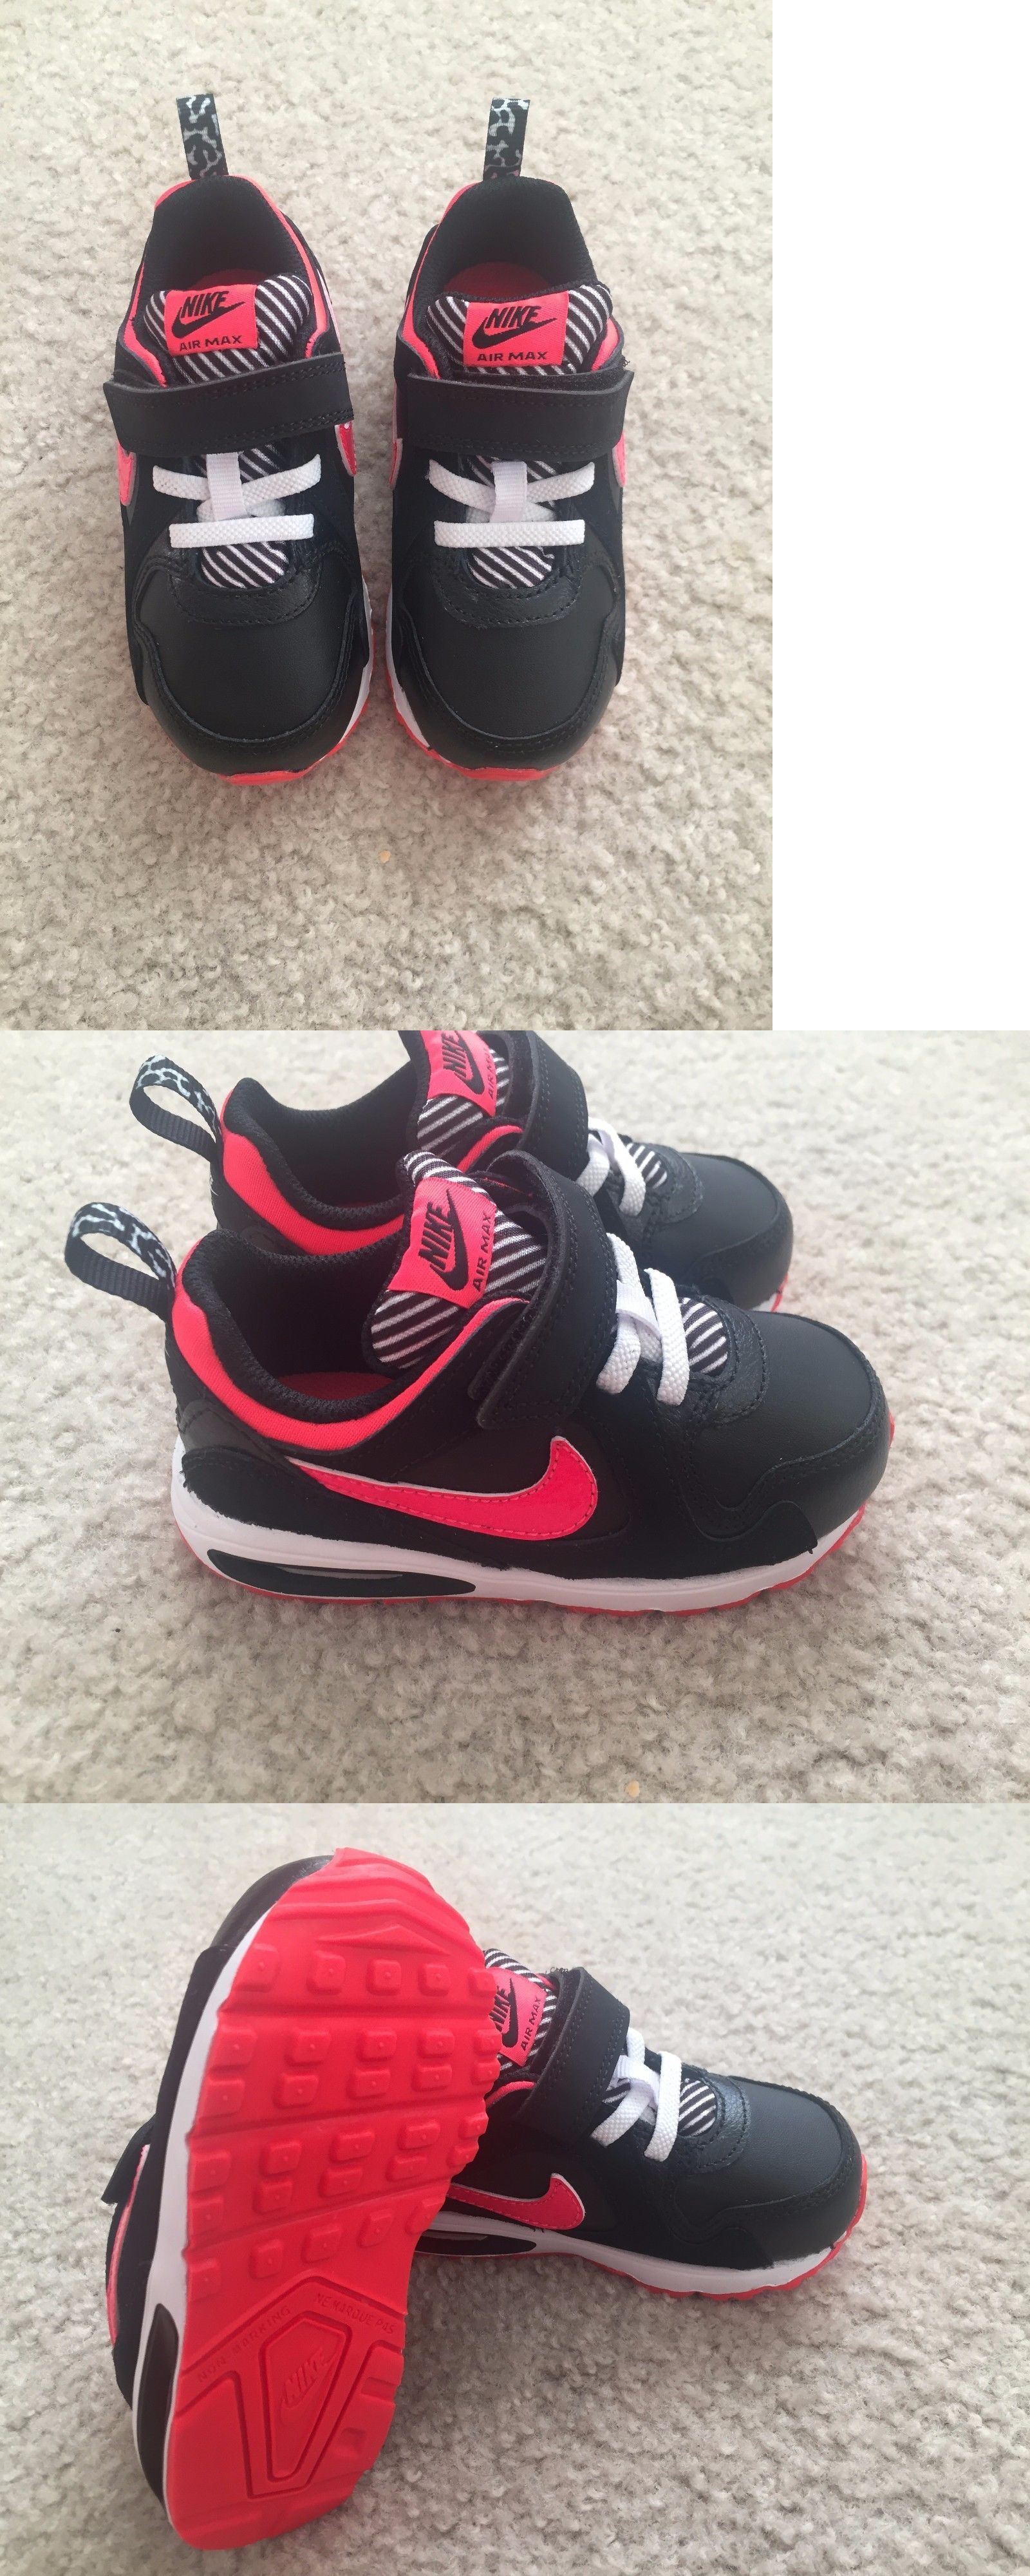 Baby Shoes New Nike Air Max Trax Toddler Tdv Kids Shoes